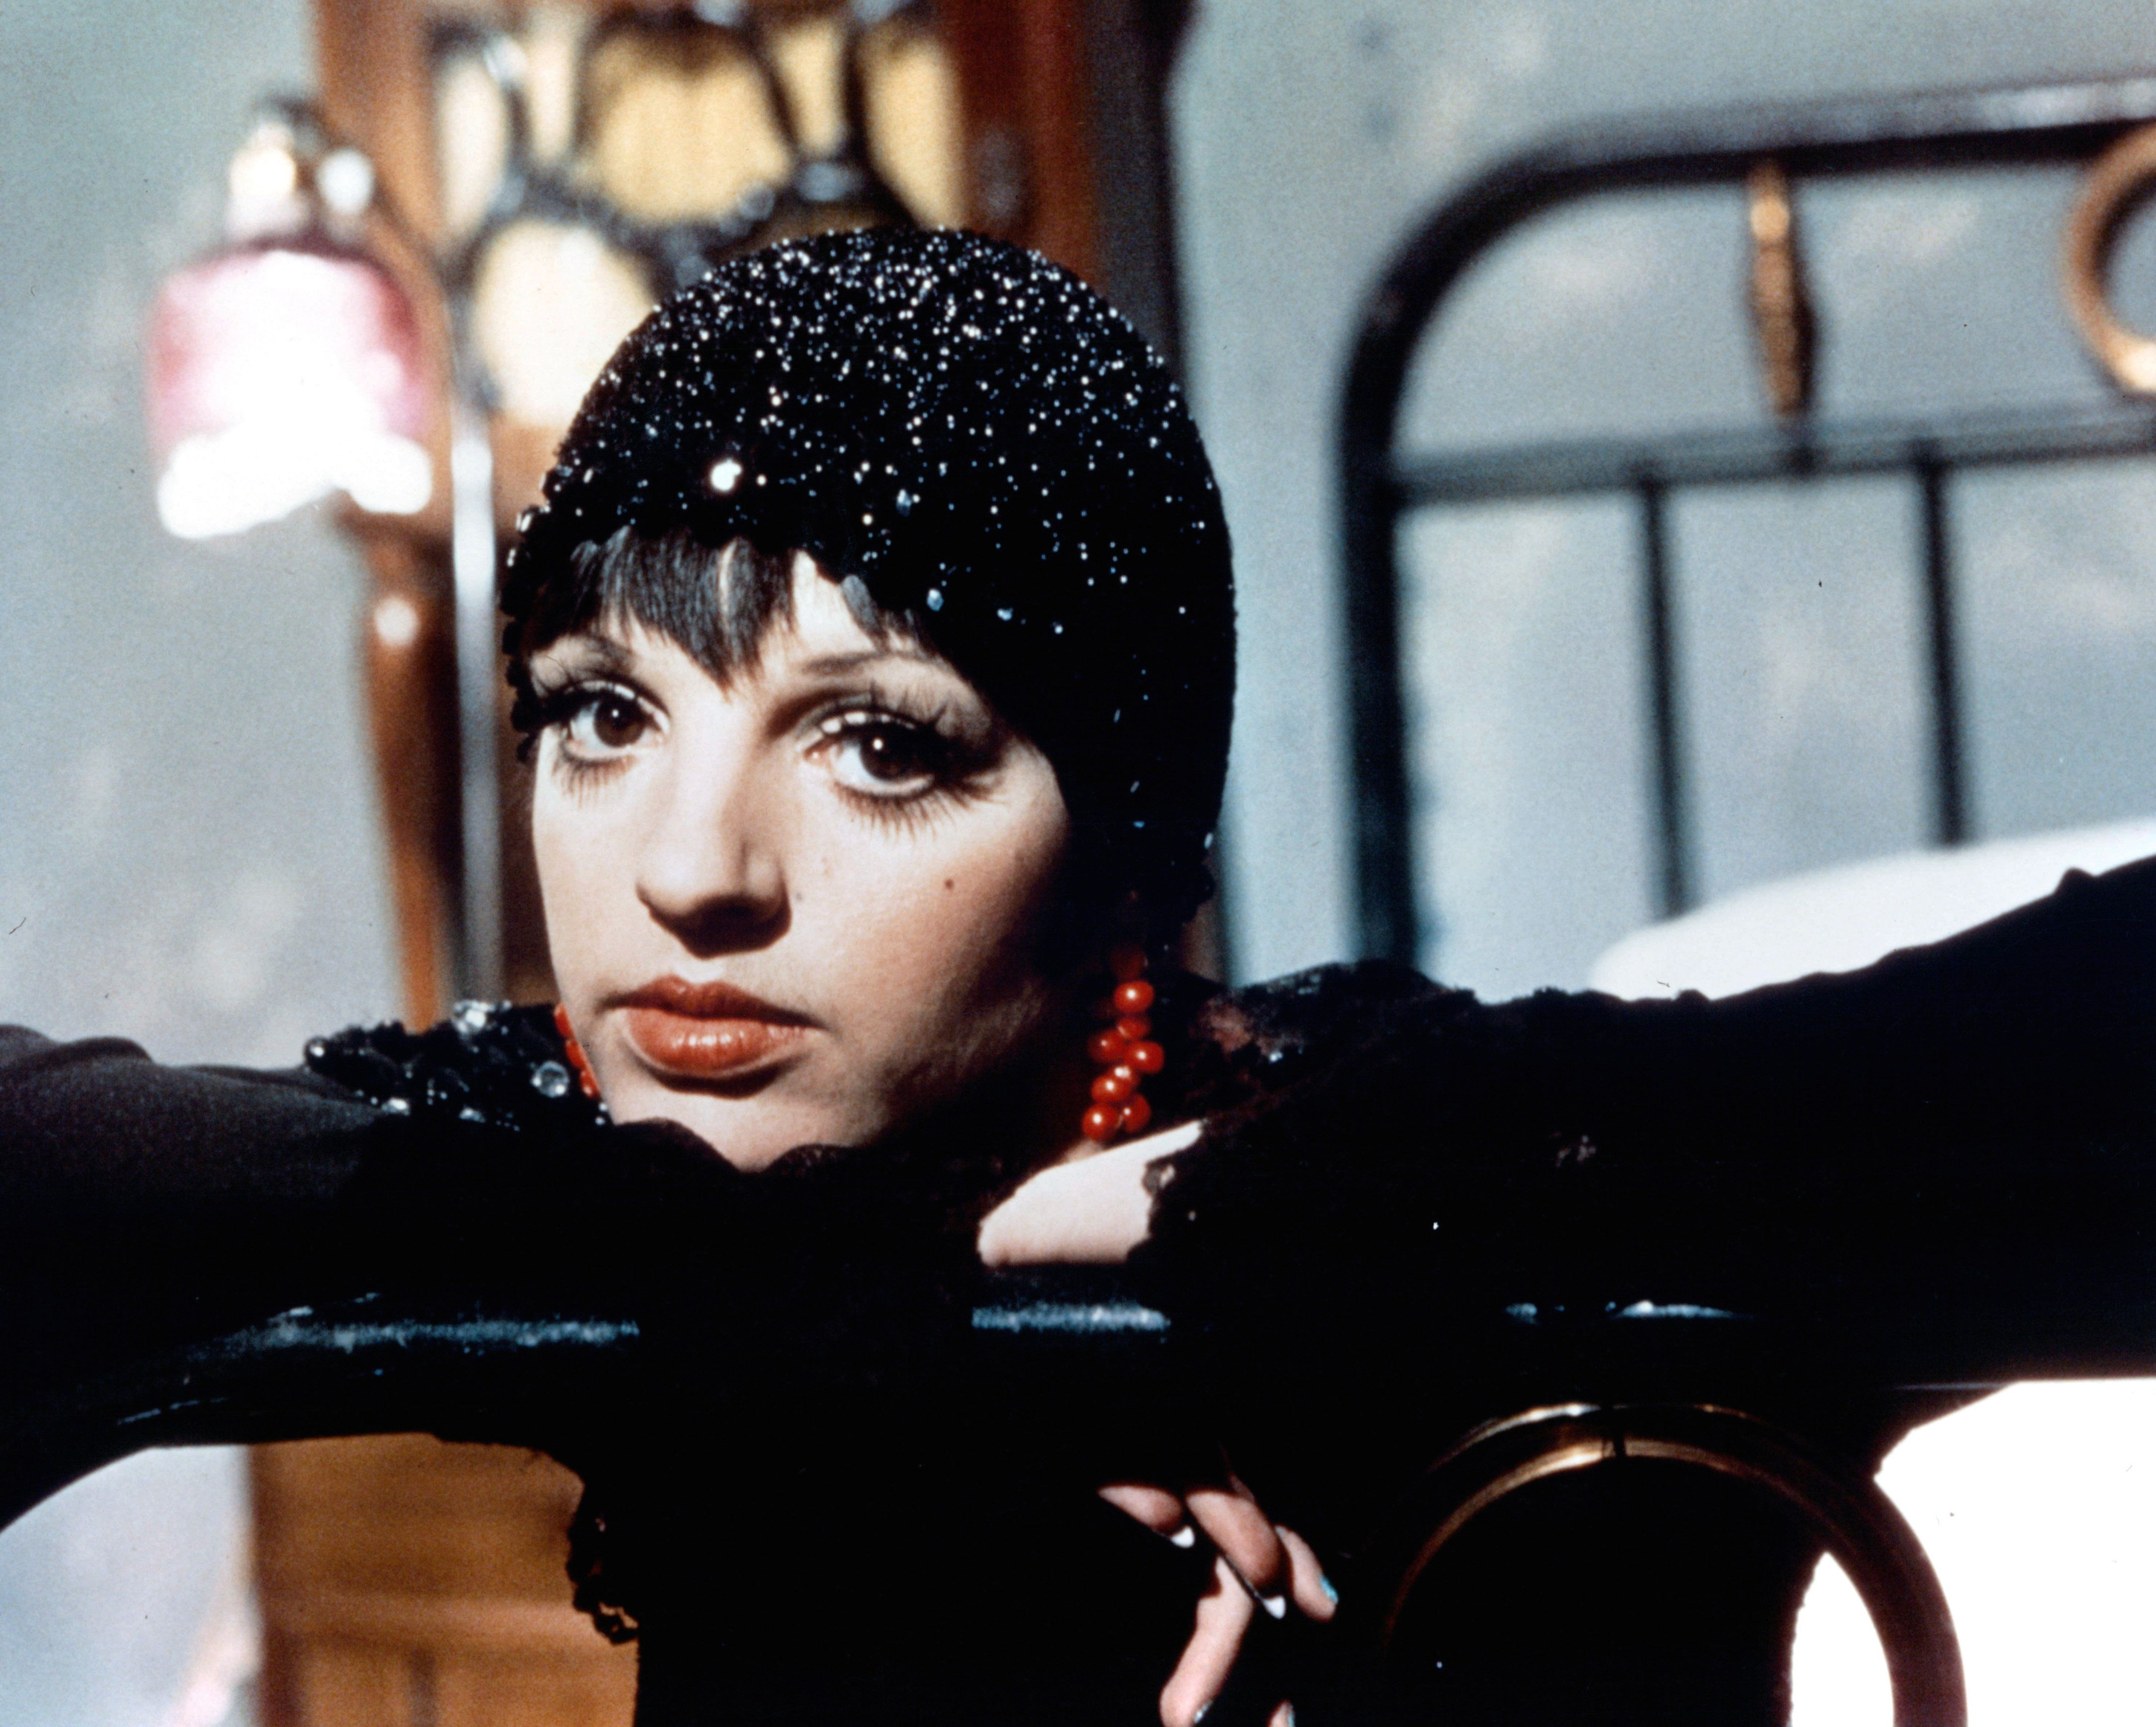 Liza Minnelli publicity portrait for the film 'Cabaret', 1972. (Photo by Allied Artists/Getty Images)